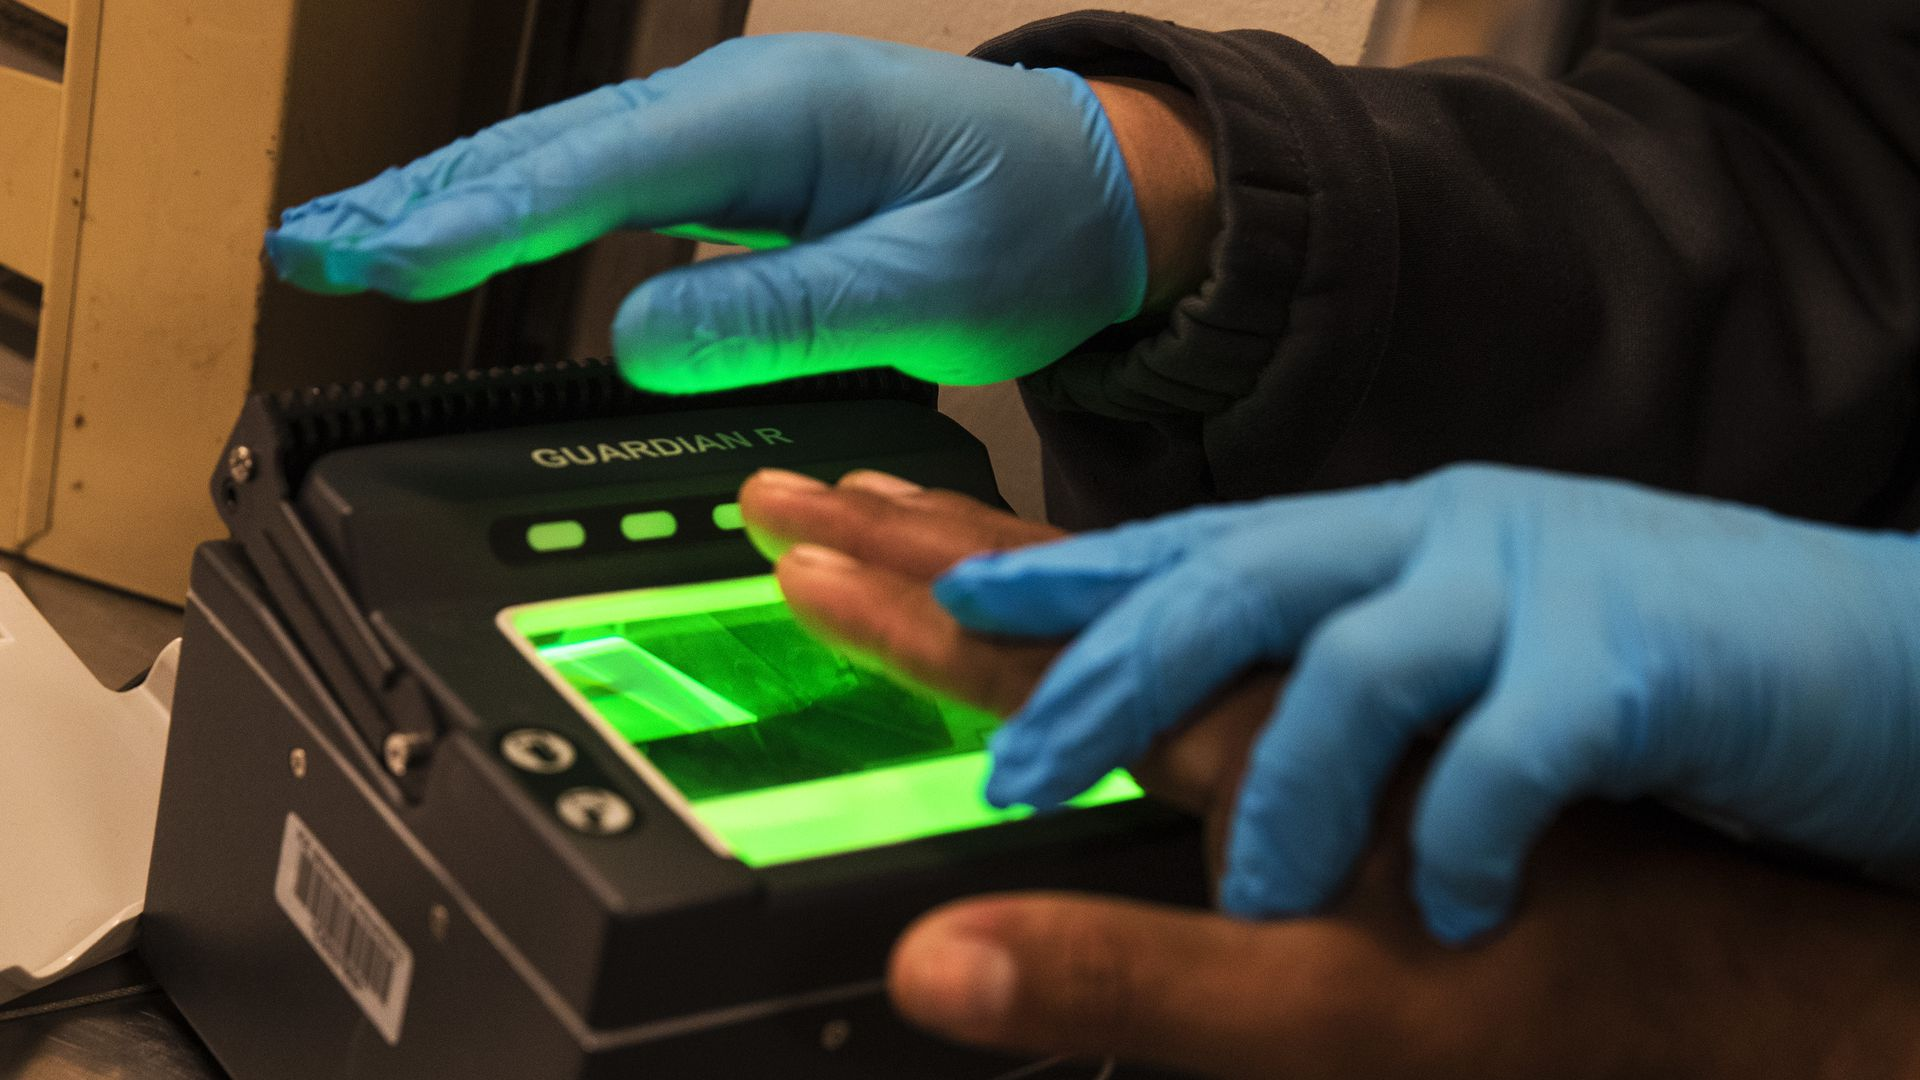 Gloved hands pressing another ungloved hand to a fingerprint scanner